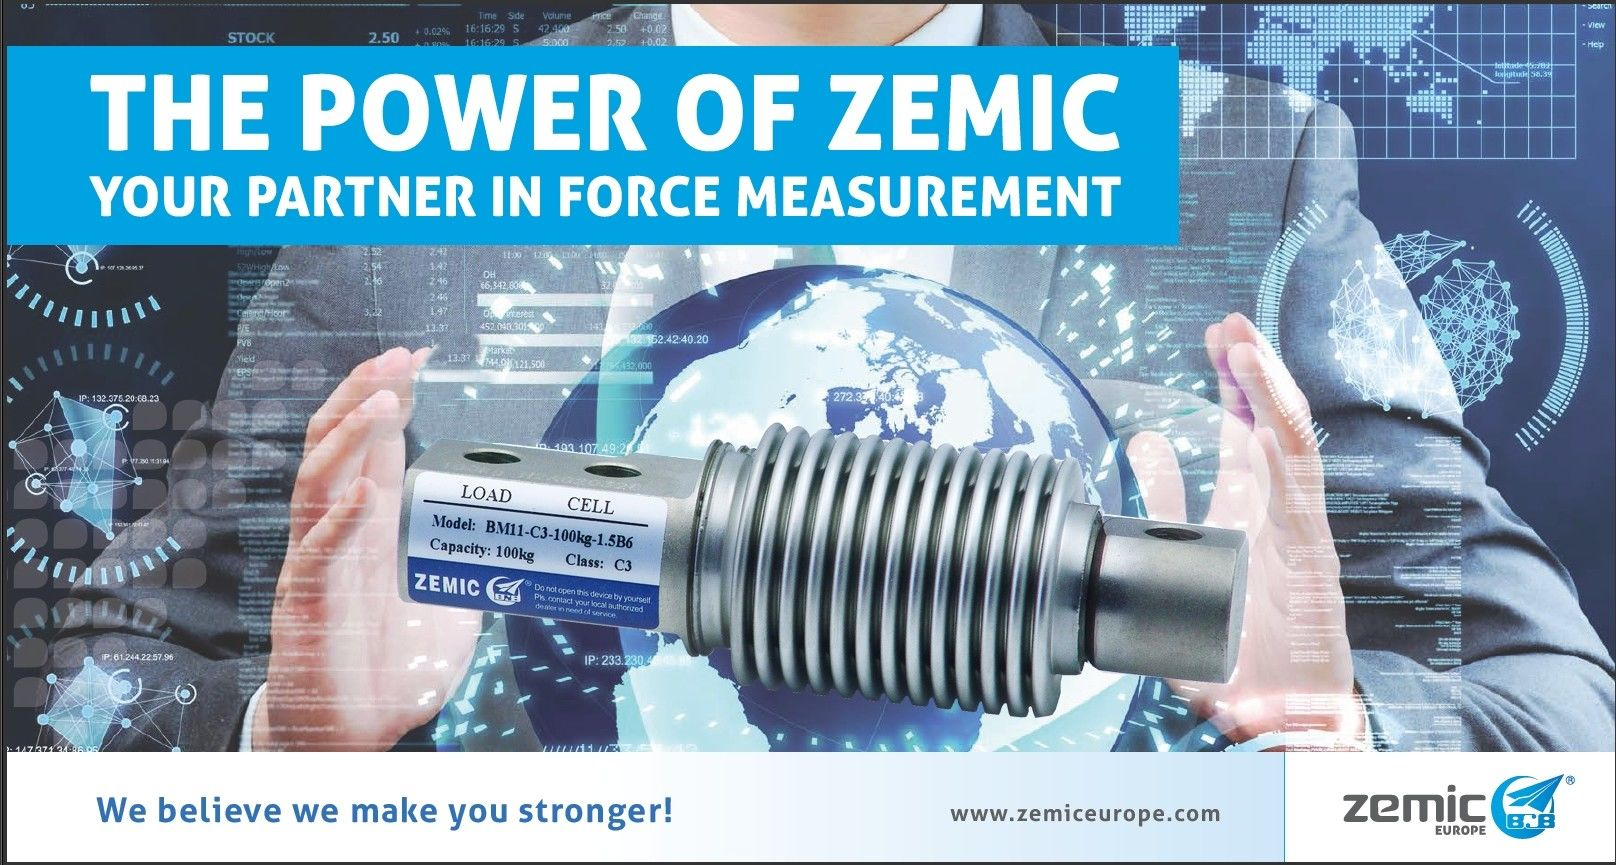 Powerofzemic